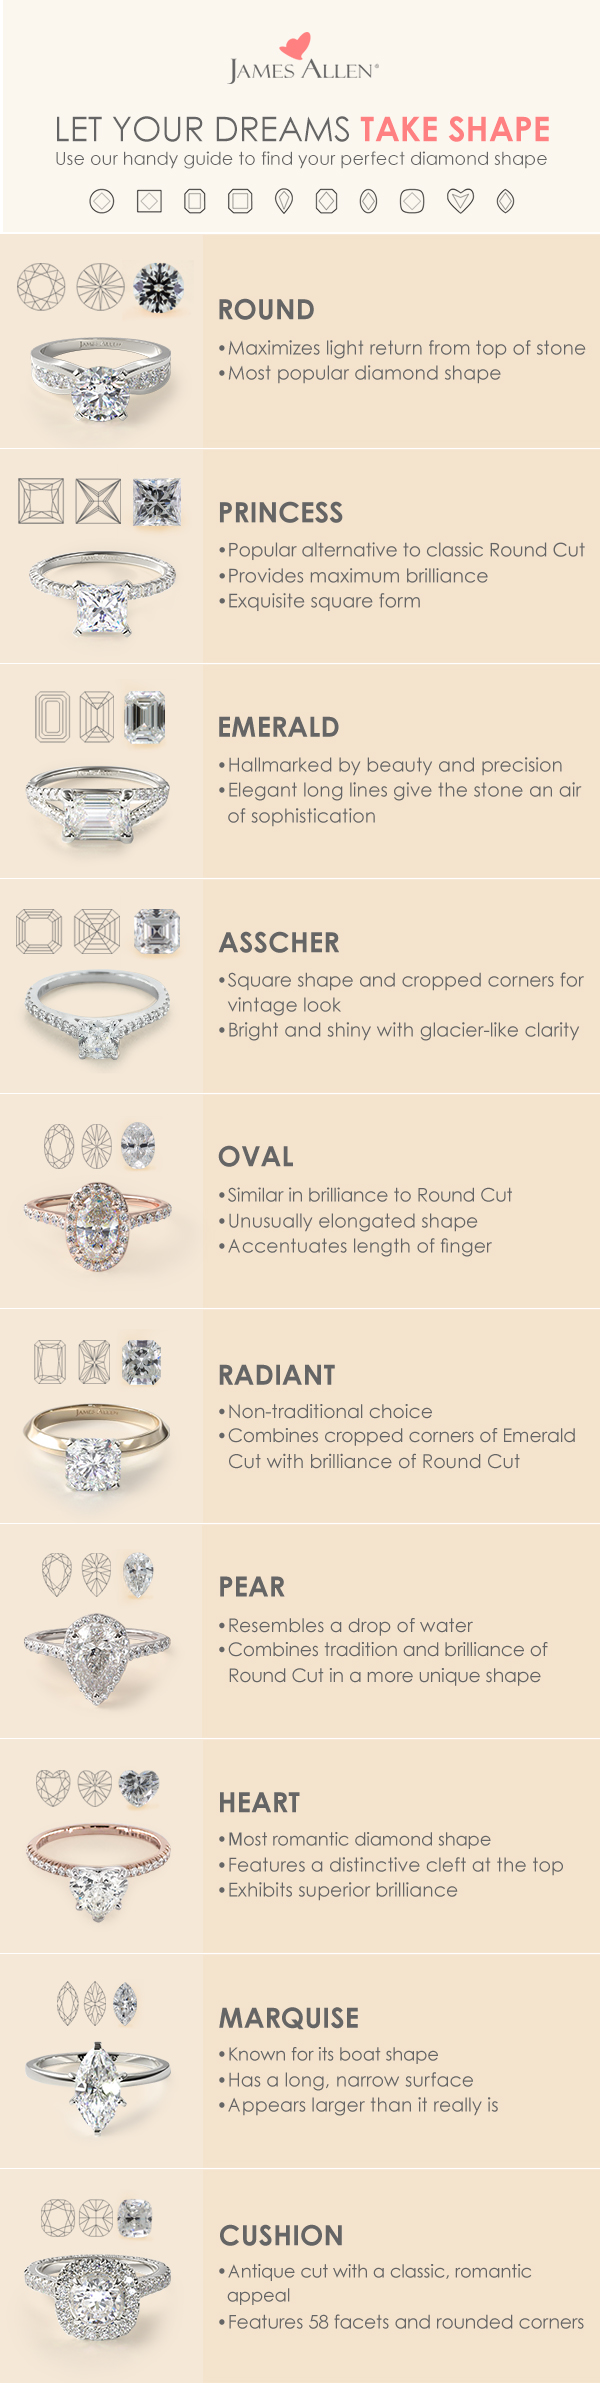 Engagement rings and diamond shapes